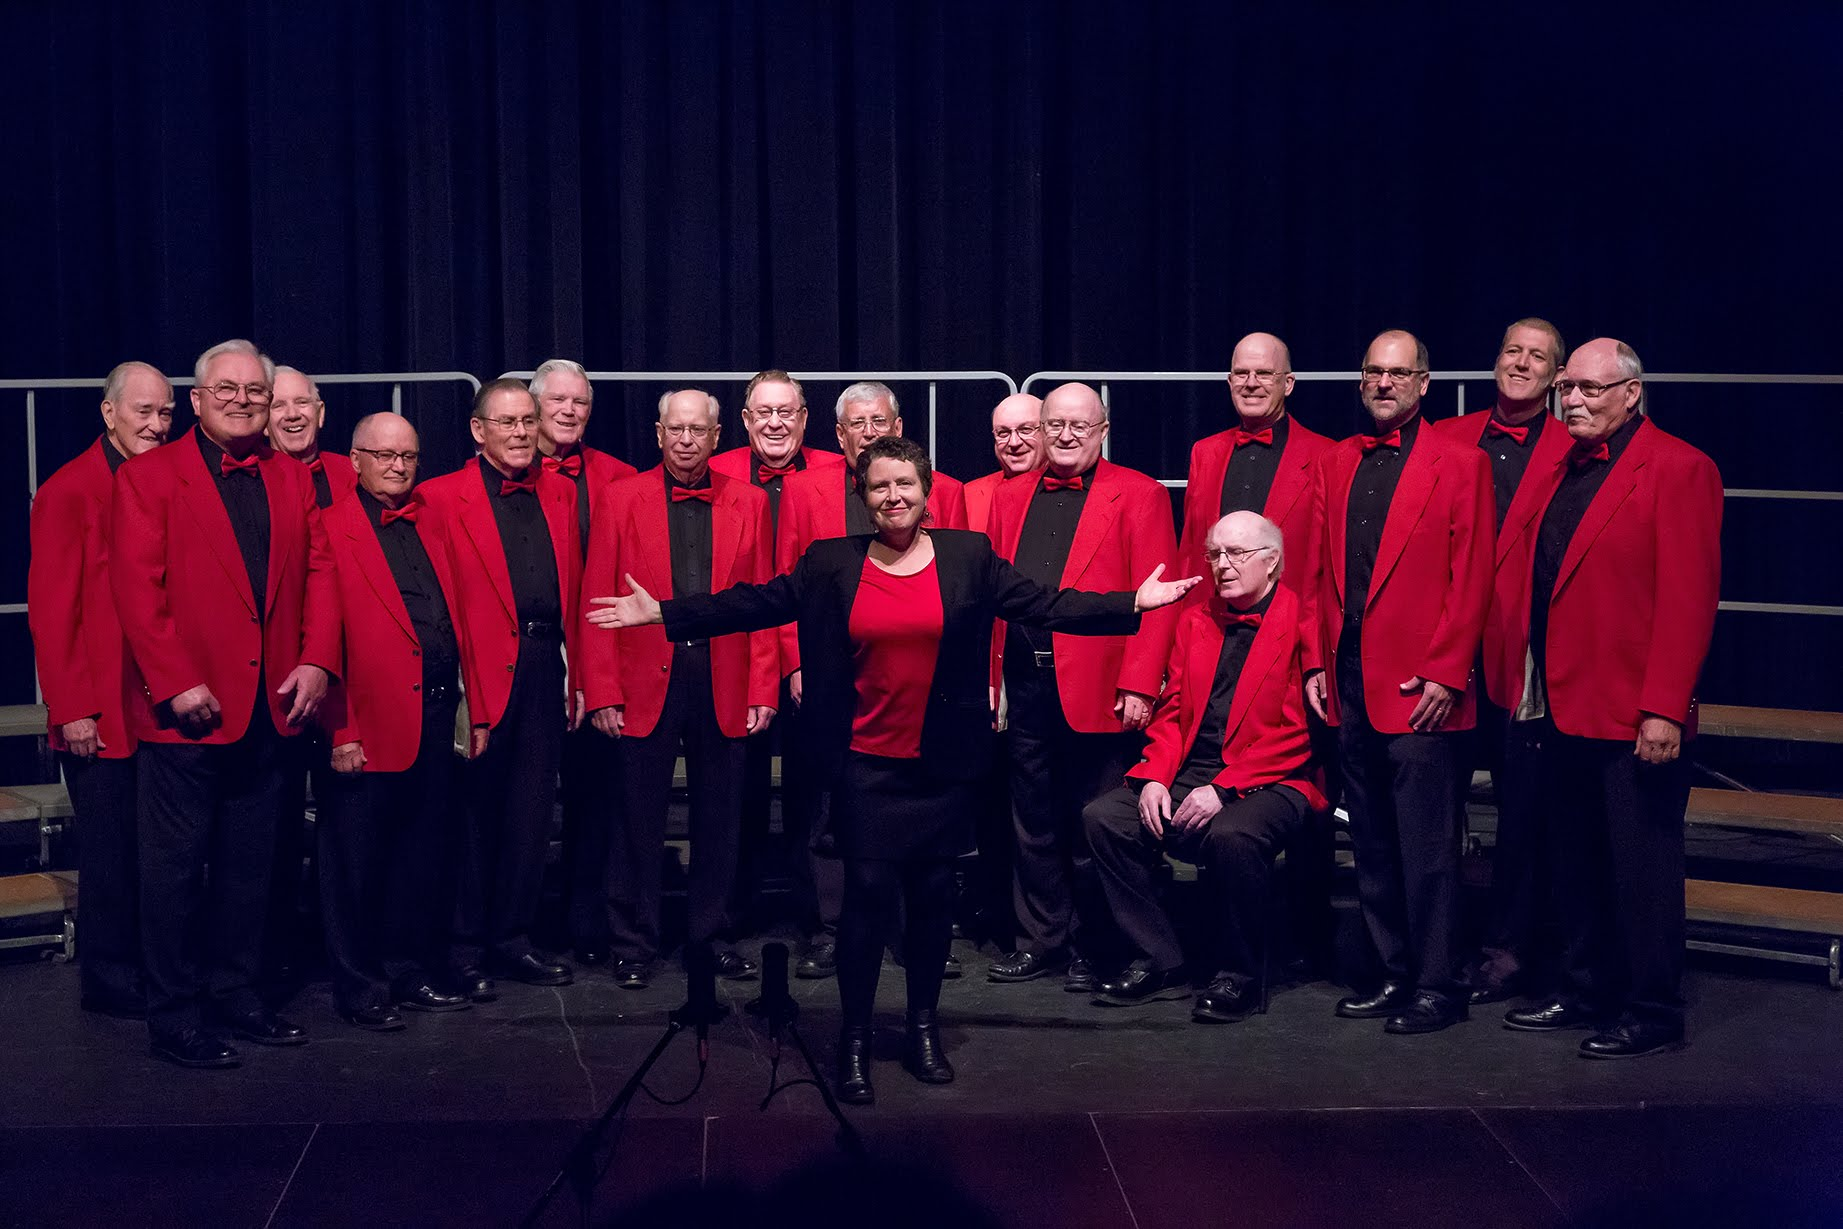 The chorus receiving the appreciation of the audience at the end of their performance.  L to R: George Smith, Tim Curry, Harry Cross, Glen Cosman, Bob Ellis, Dave Hansen, Al McPherson, Duncan Mugford, Rod Graham, Ken Creighton, John Wright, Mark McGillivray (seated), André Welland, Grant Clark, Mike Brown, John Backa.  Standing in front is Director Janet Kidd.